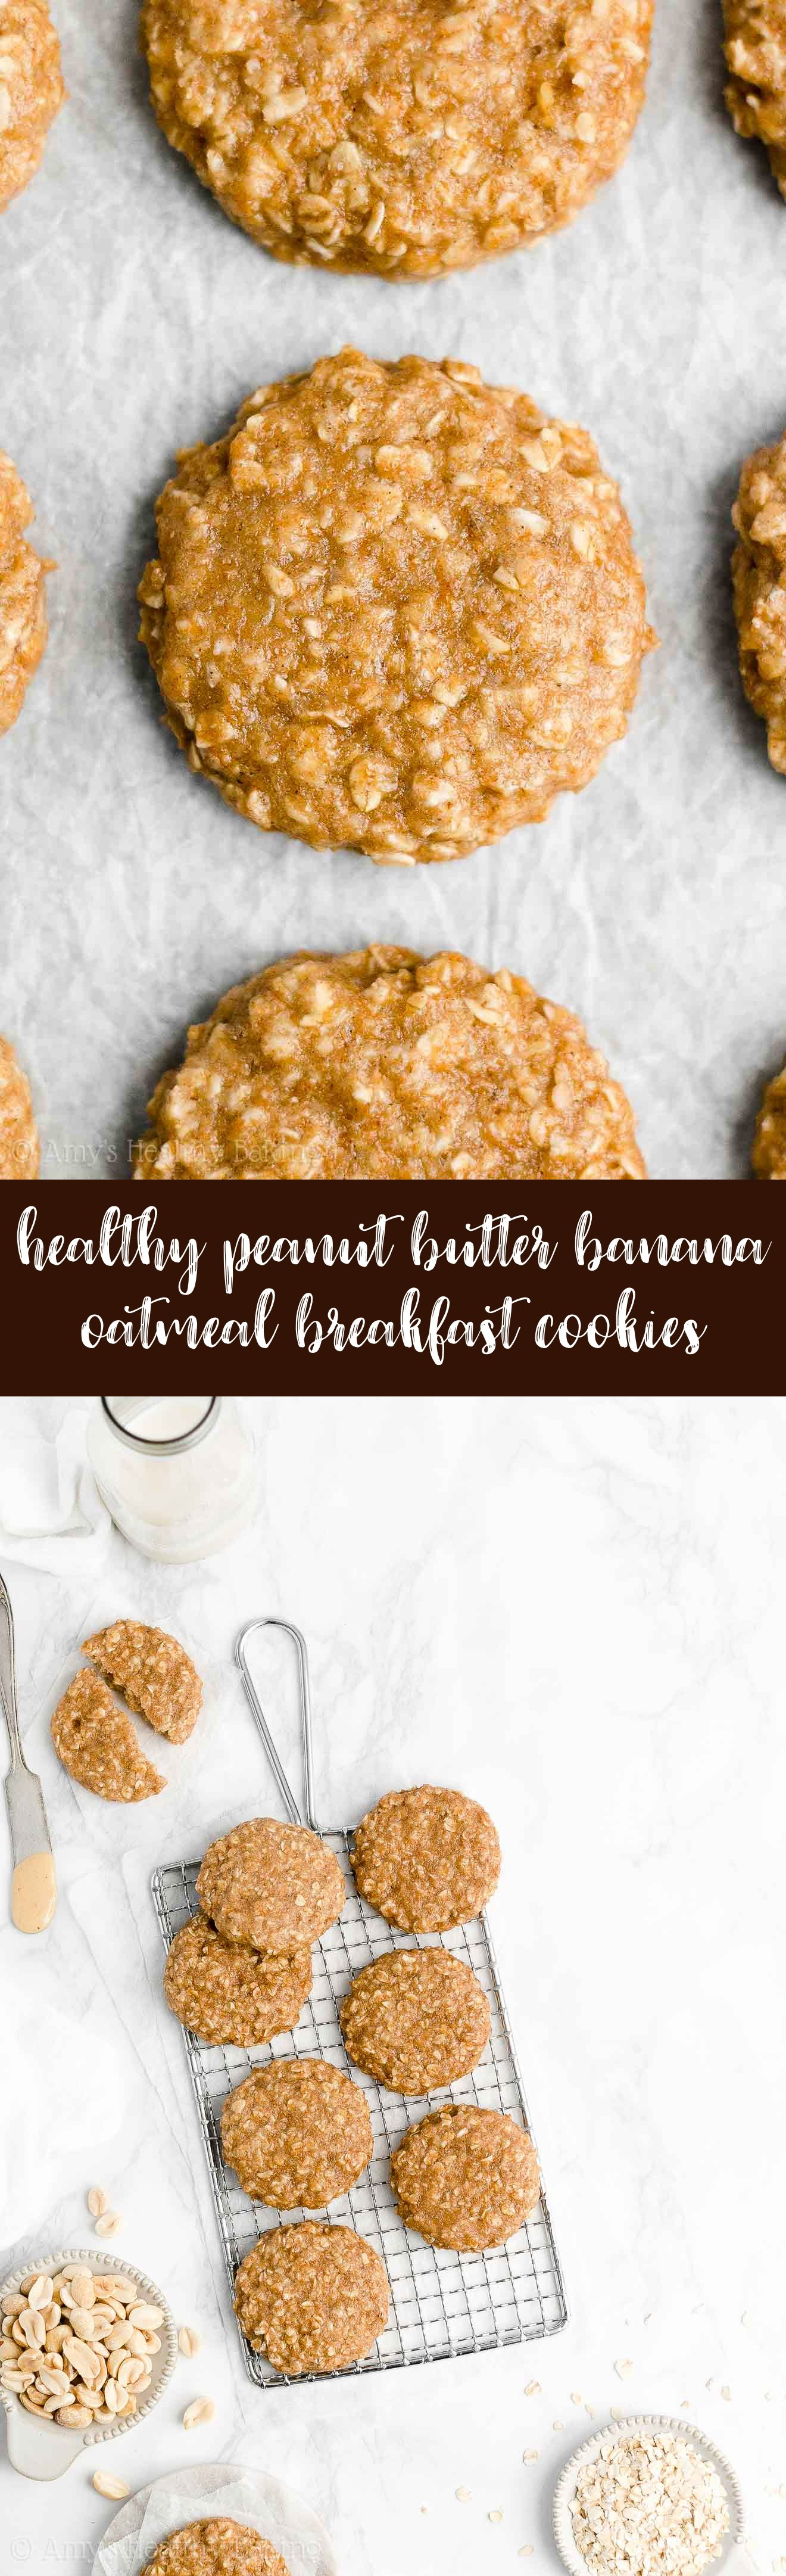 Best Easy Healthy Vegan Low Calorie Peanut Butter Banana Oatmeal Breakfast Cookies